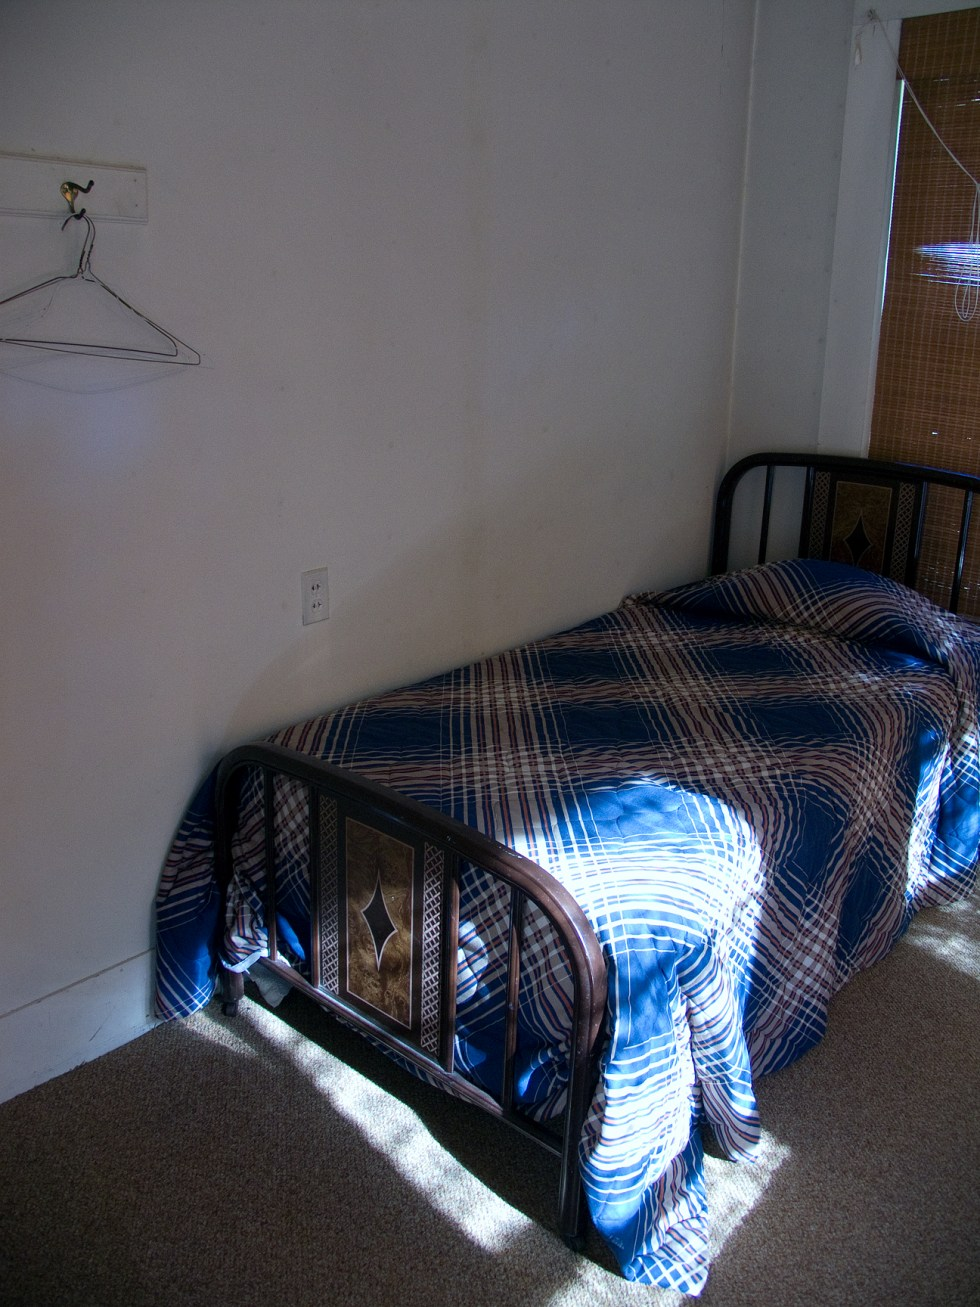 (above) This is one of many guest bedrooms which are still being used. Hunters and fisherman don't seem to care about the interior design, as long as the sheets are clean.